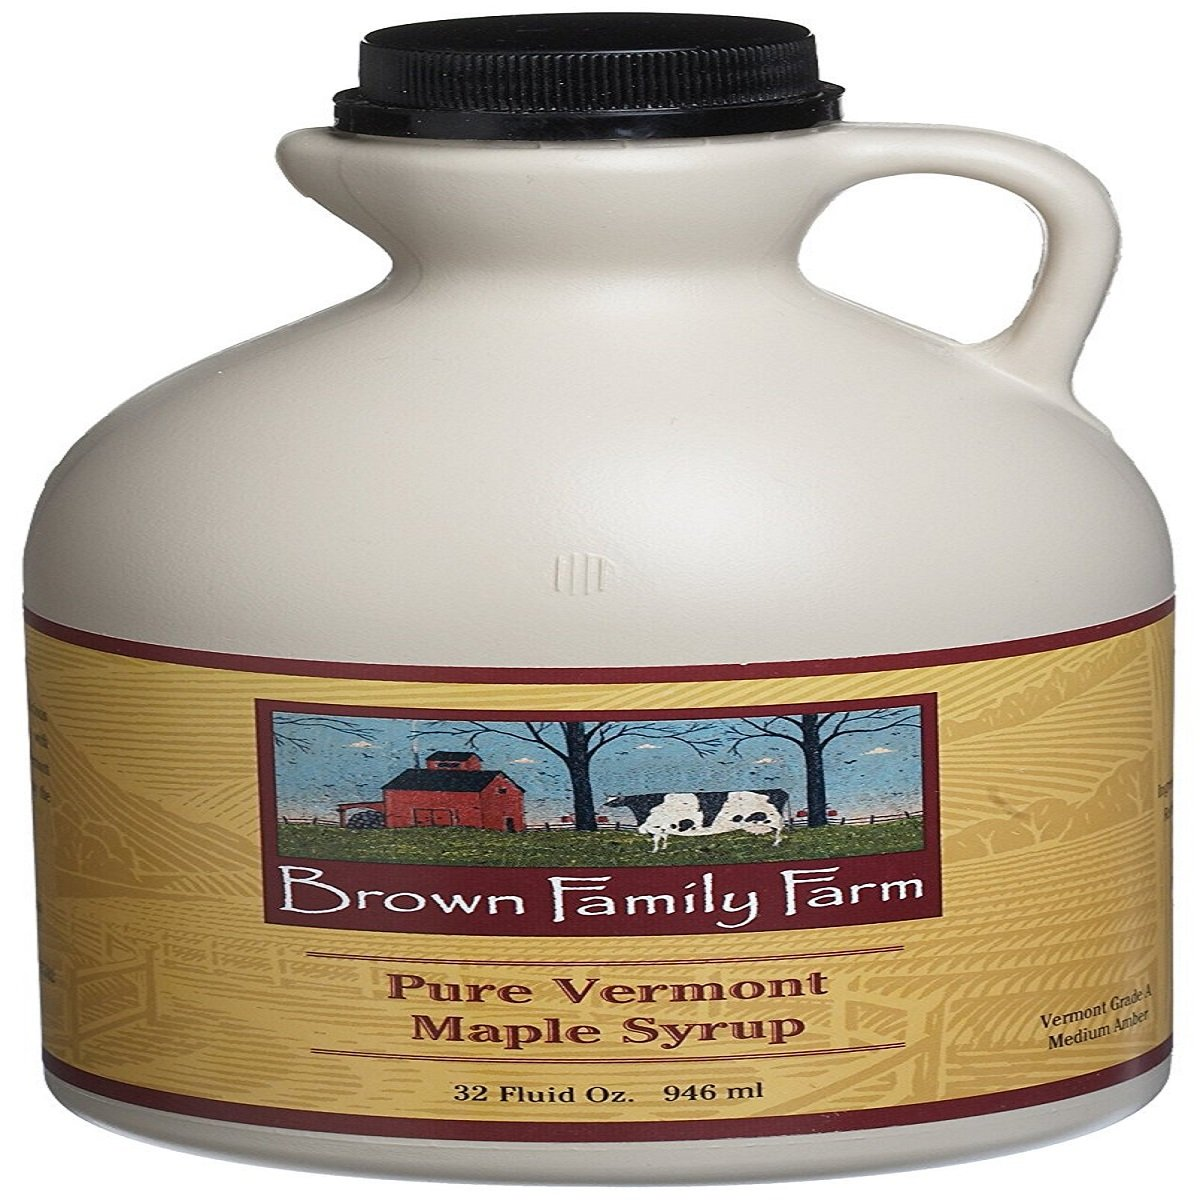 VERMONT MAPLE SYRUP FRAGRANCE OIL - 16 OZ/ 1 LB - FOR CANDLE & SOAP MAKING BY VIRGINIA CANDLE SUPPLY - FREE S&H IN USA